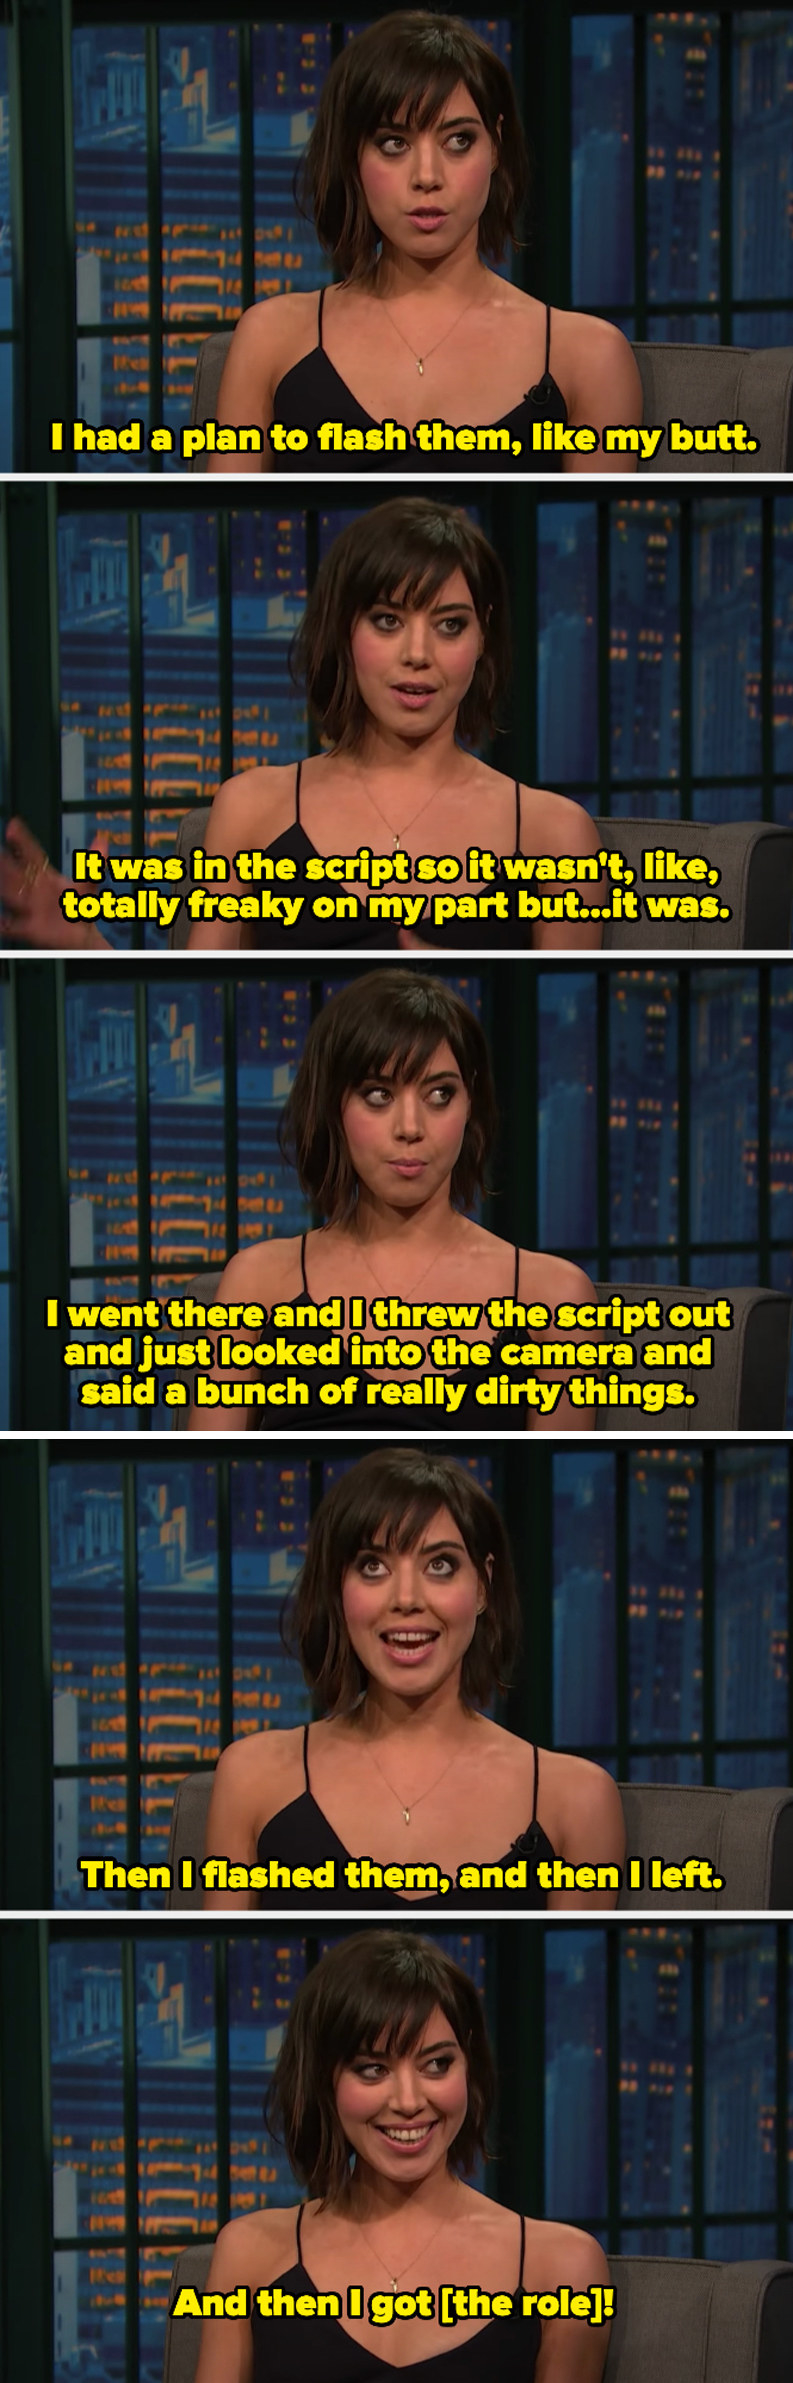 Aubrey explaining her plan was to flash her butt and she threw the script out, looked in the camera, said a bunch of dirty things, flashed them, and left. She got the role.